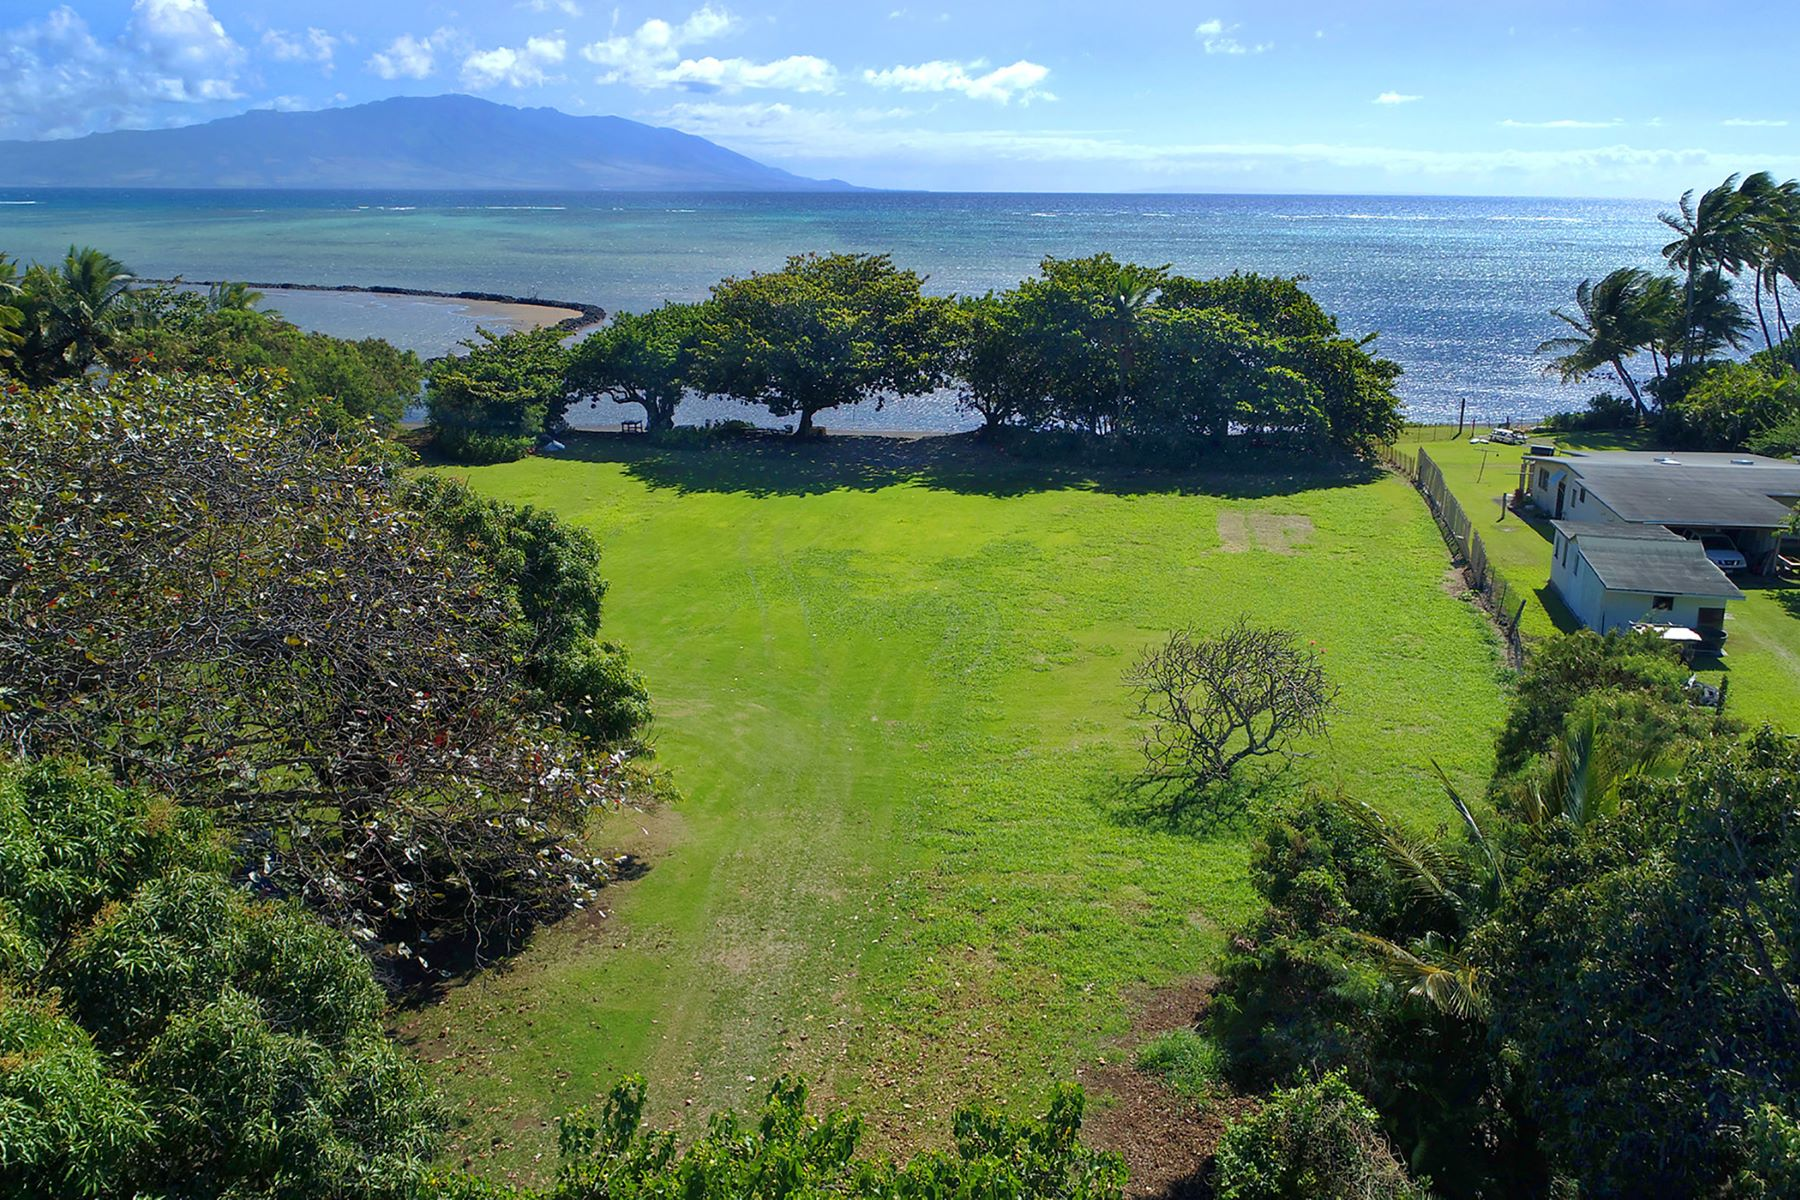 Land for Sale at Oceanfront Molokai, Vacant Land 7754/7760 Kamehameha V Hwy Kaunakakai, Hawaii 96748 United States